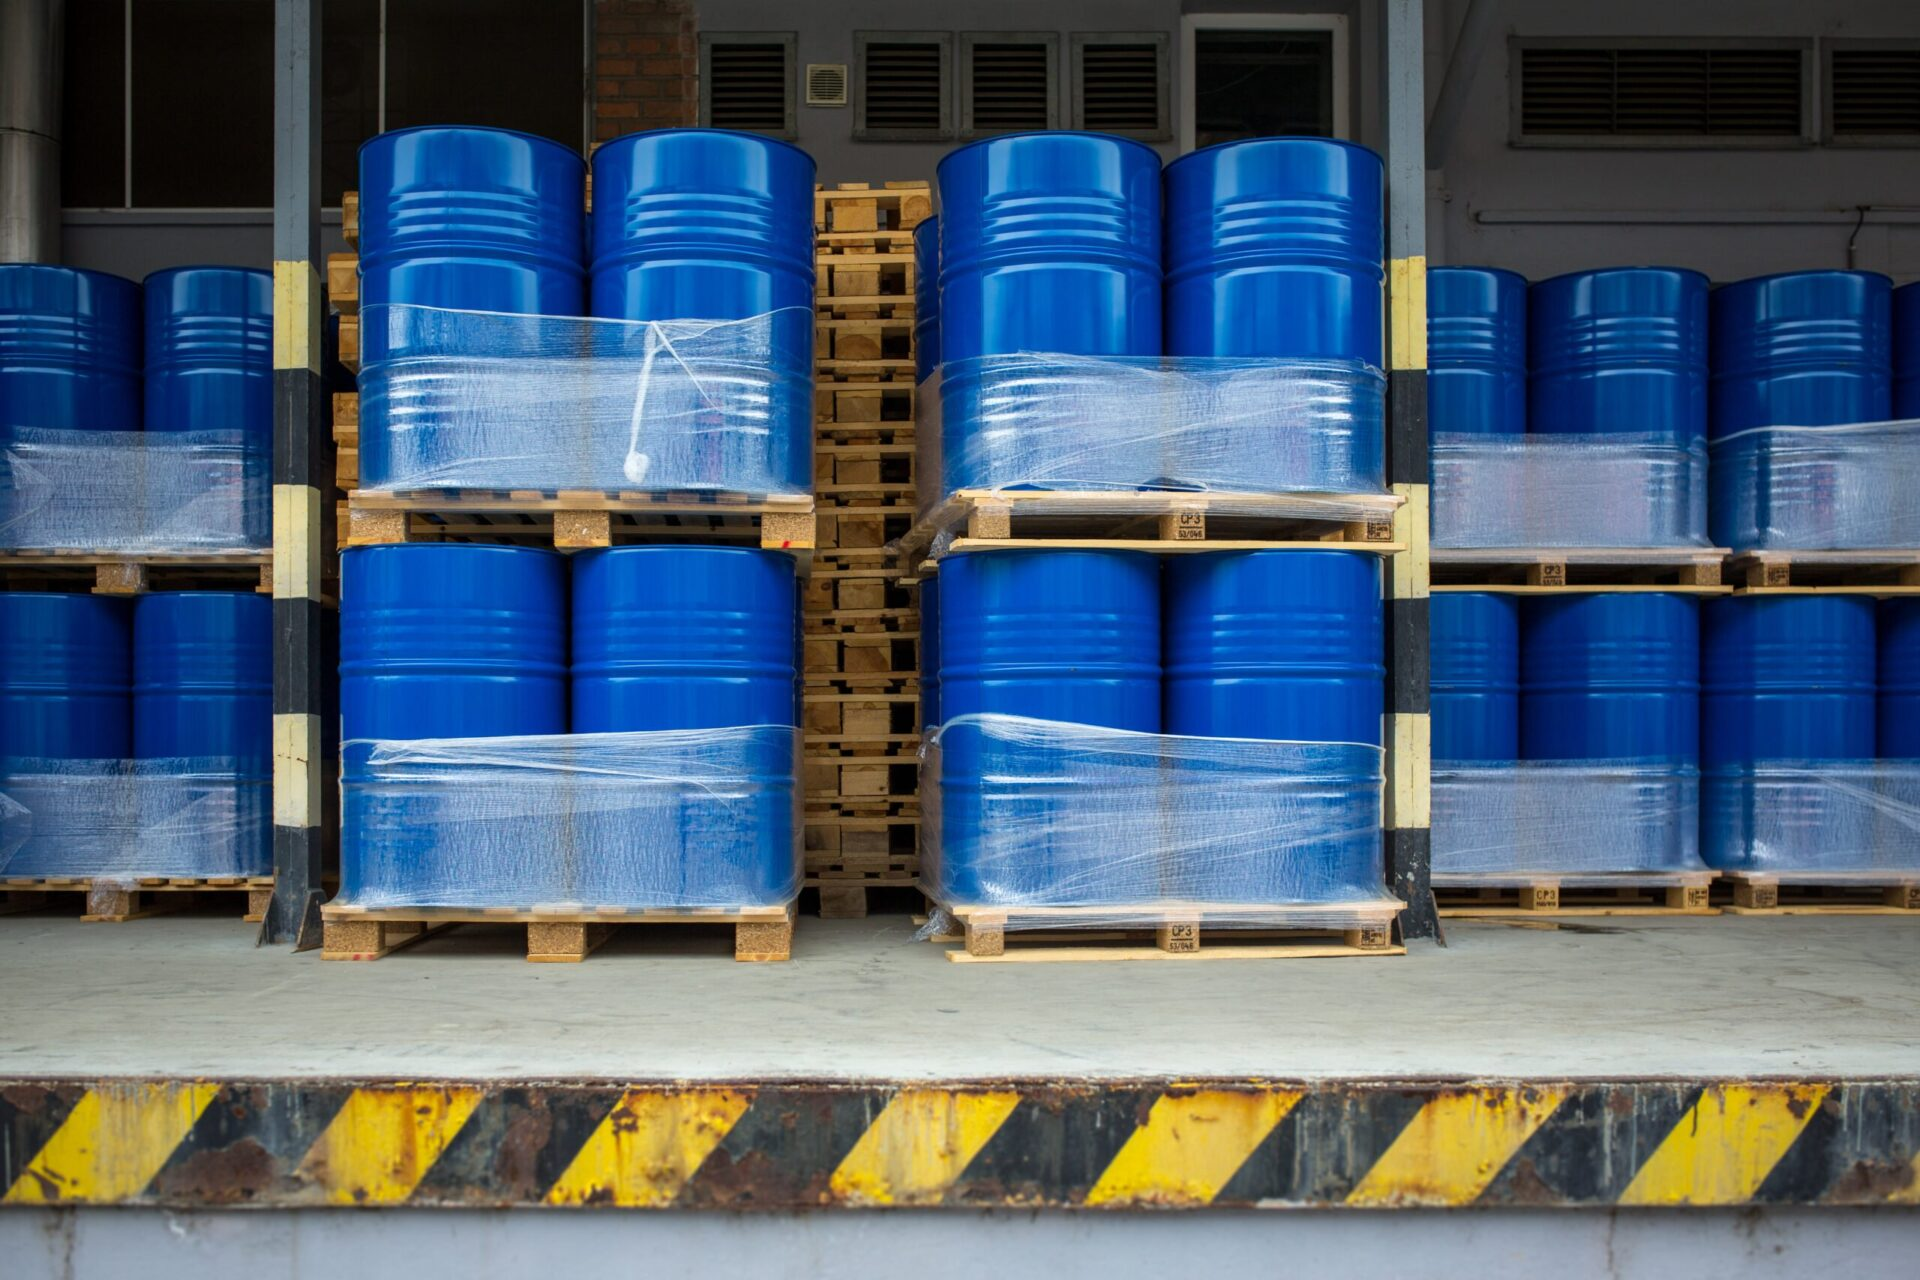 Toxic waste/chemicals stored in barrels at a plant - cans with chemicals, industry oil barrels, chemical tank, hazardous waste, chemical reagents,